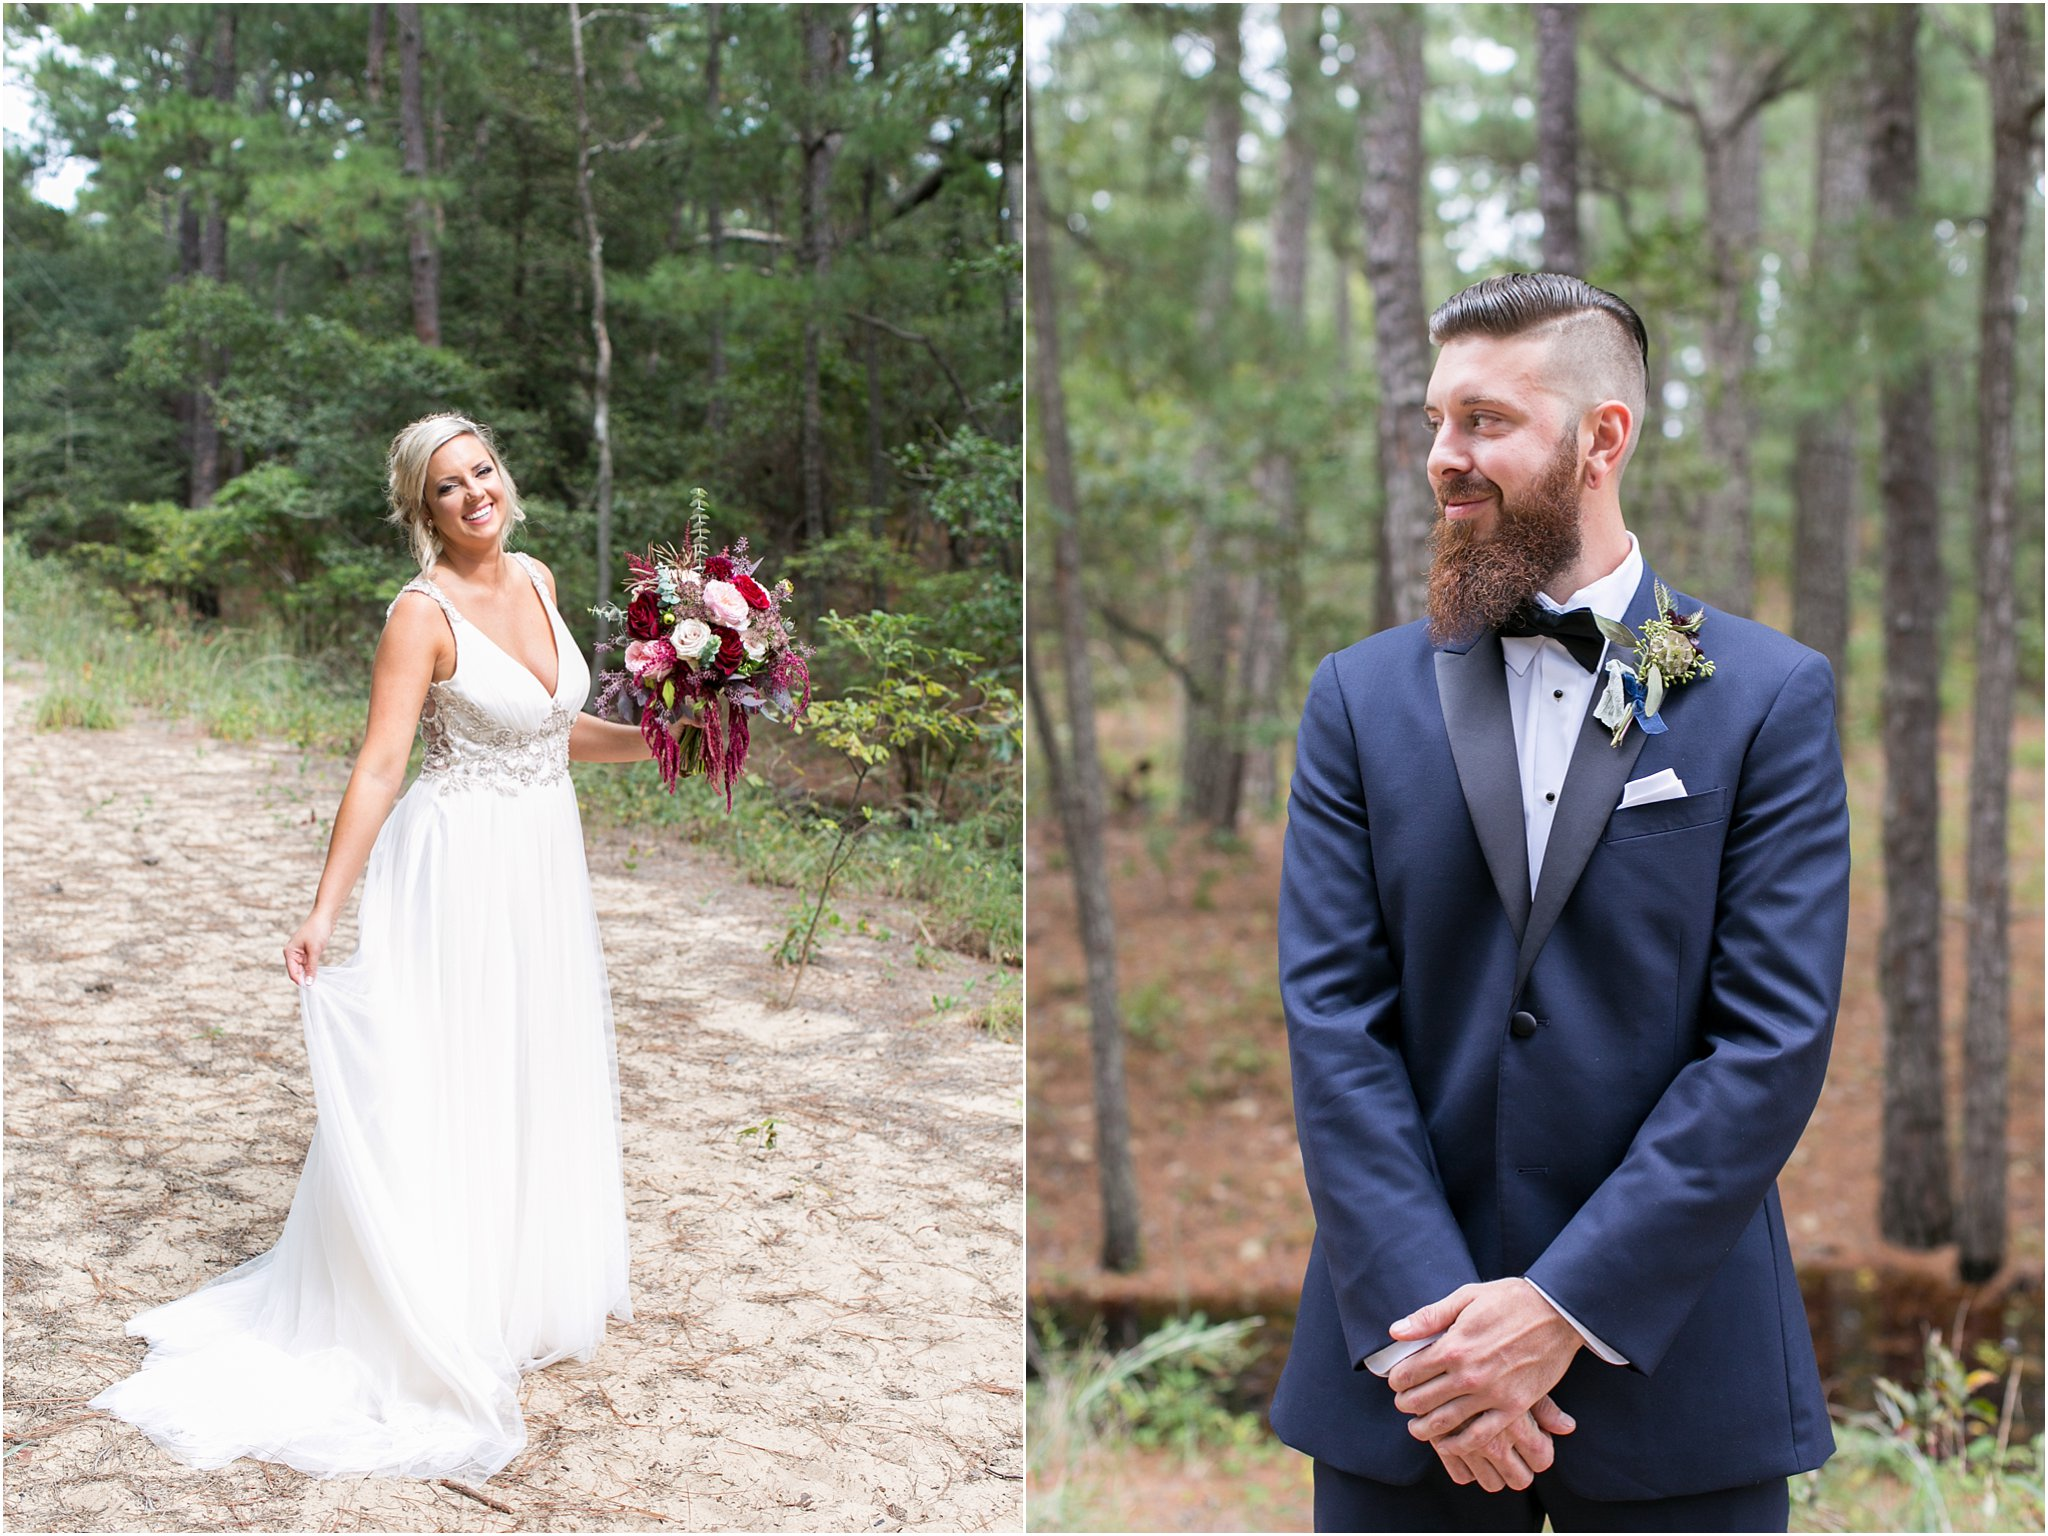 jessica_ryan_photography_virginia_wedding_photographer_candid_authentic_hampton_roads_wedding_photography_marina_shores_yacht_club_first_landing_state_park_woodland_theme_garden_3293